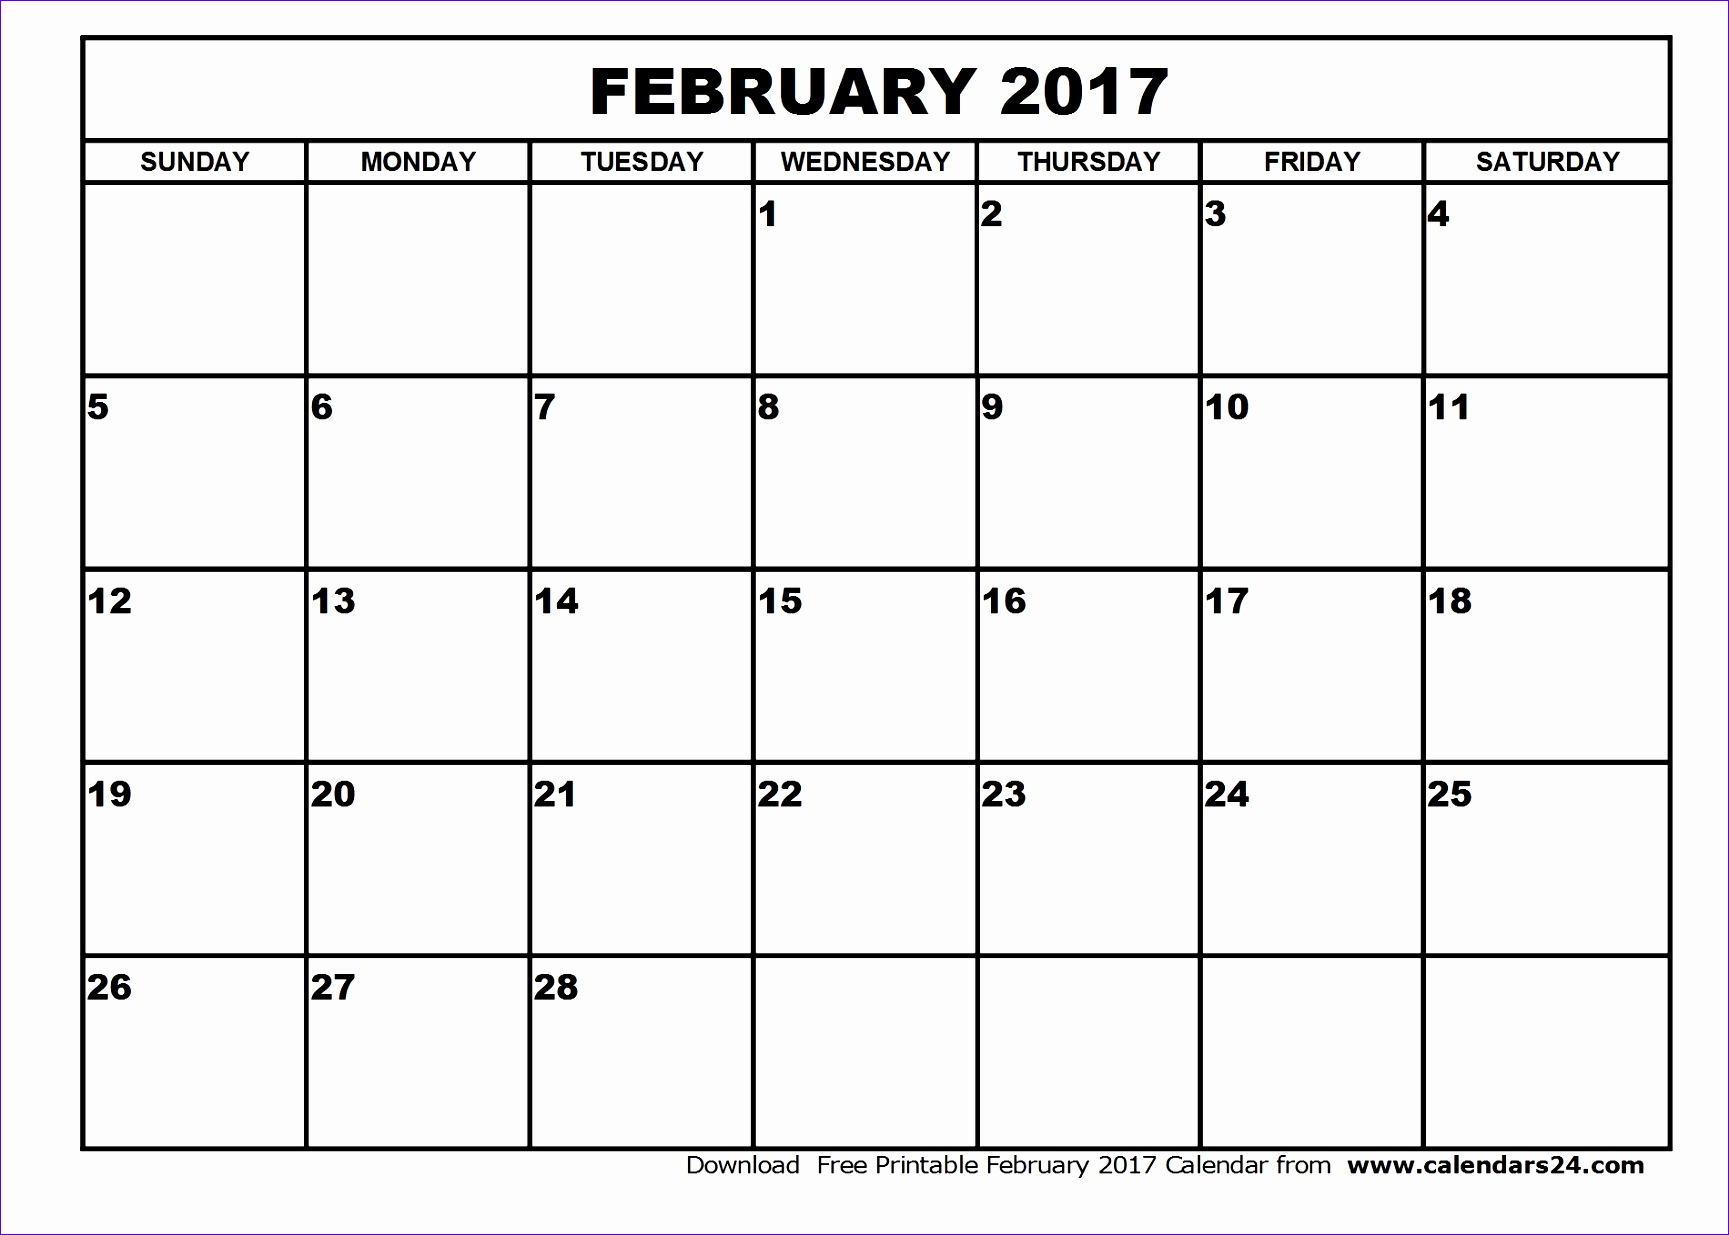 Excel Spending Template Bpjkk Fresh February 2017 Calendar India 19001343